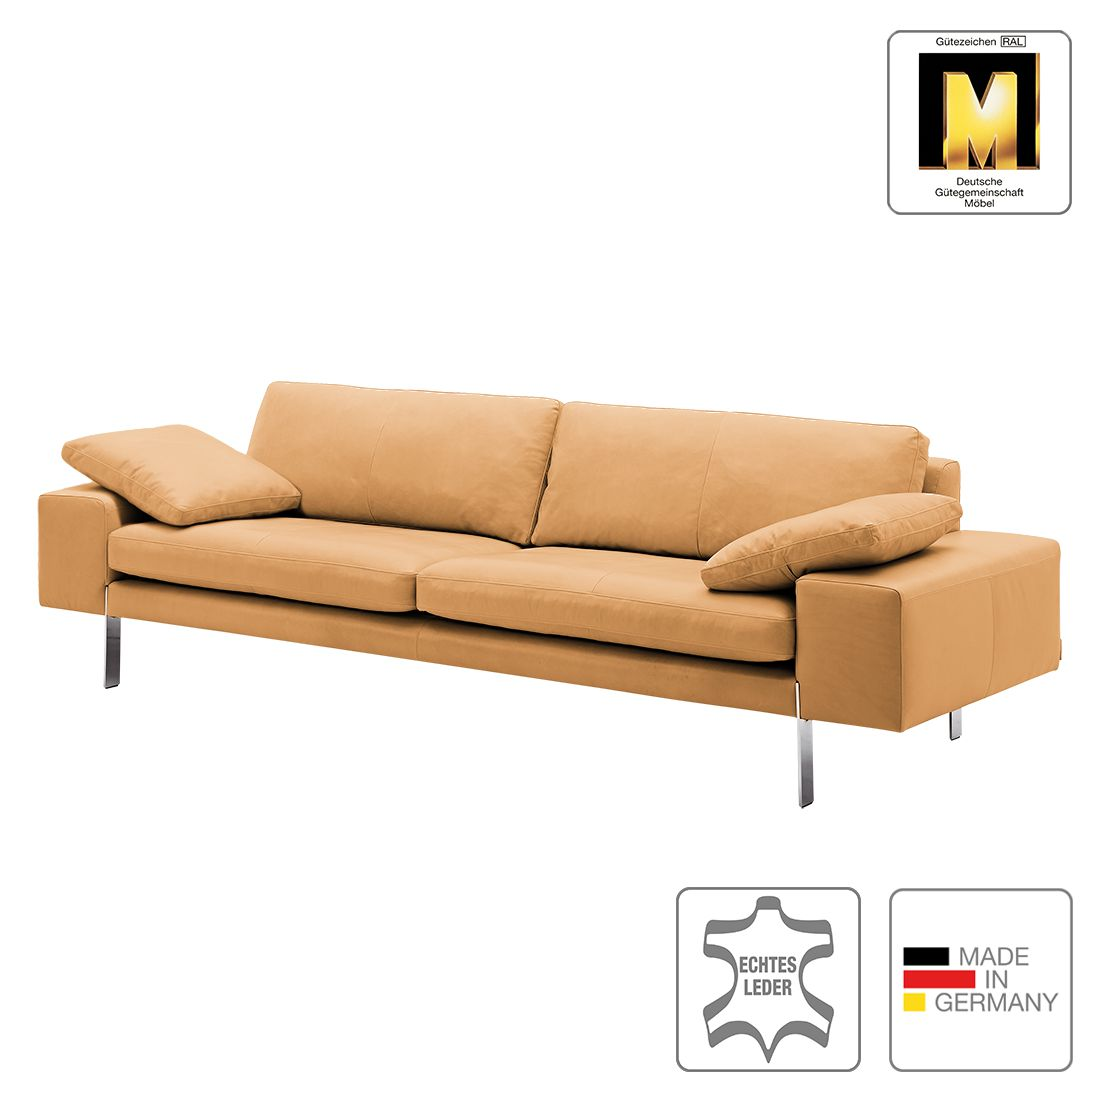 sofa topal 4 sitzer echtleder cognac 2 kissen machalke. Black Bedroom Furniture Sets. Home Design Ideas